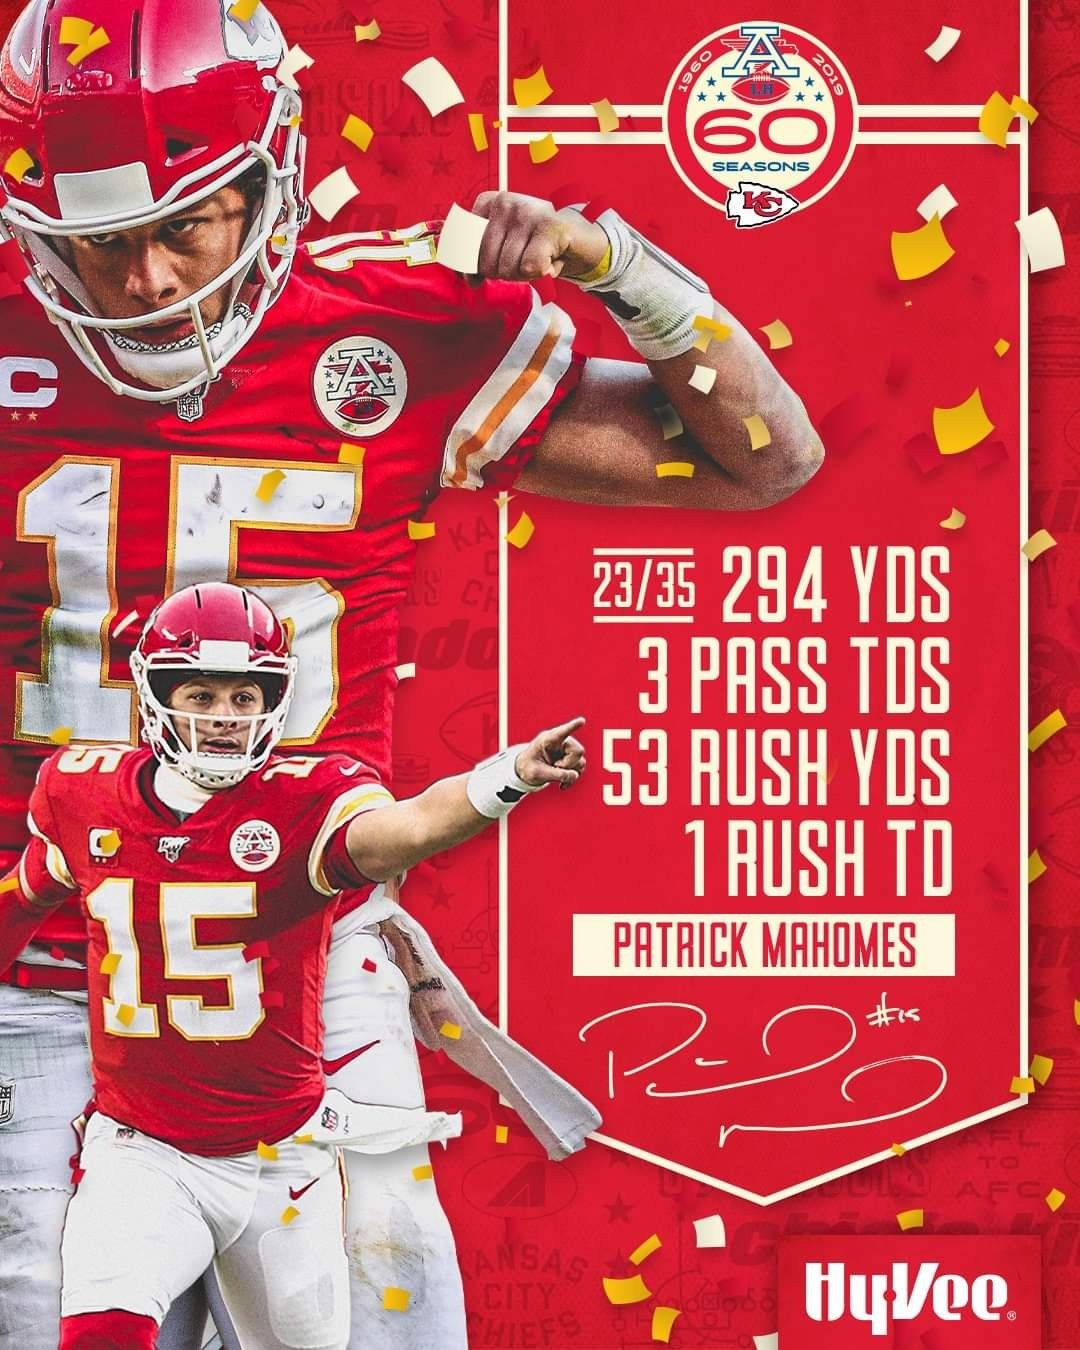 Patrick Mahomes 1/19/20 AFC Championship game in 2020